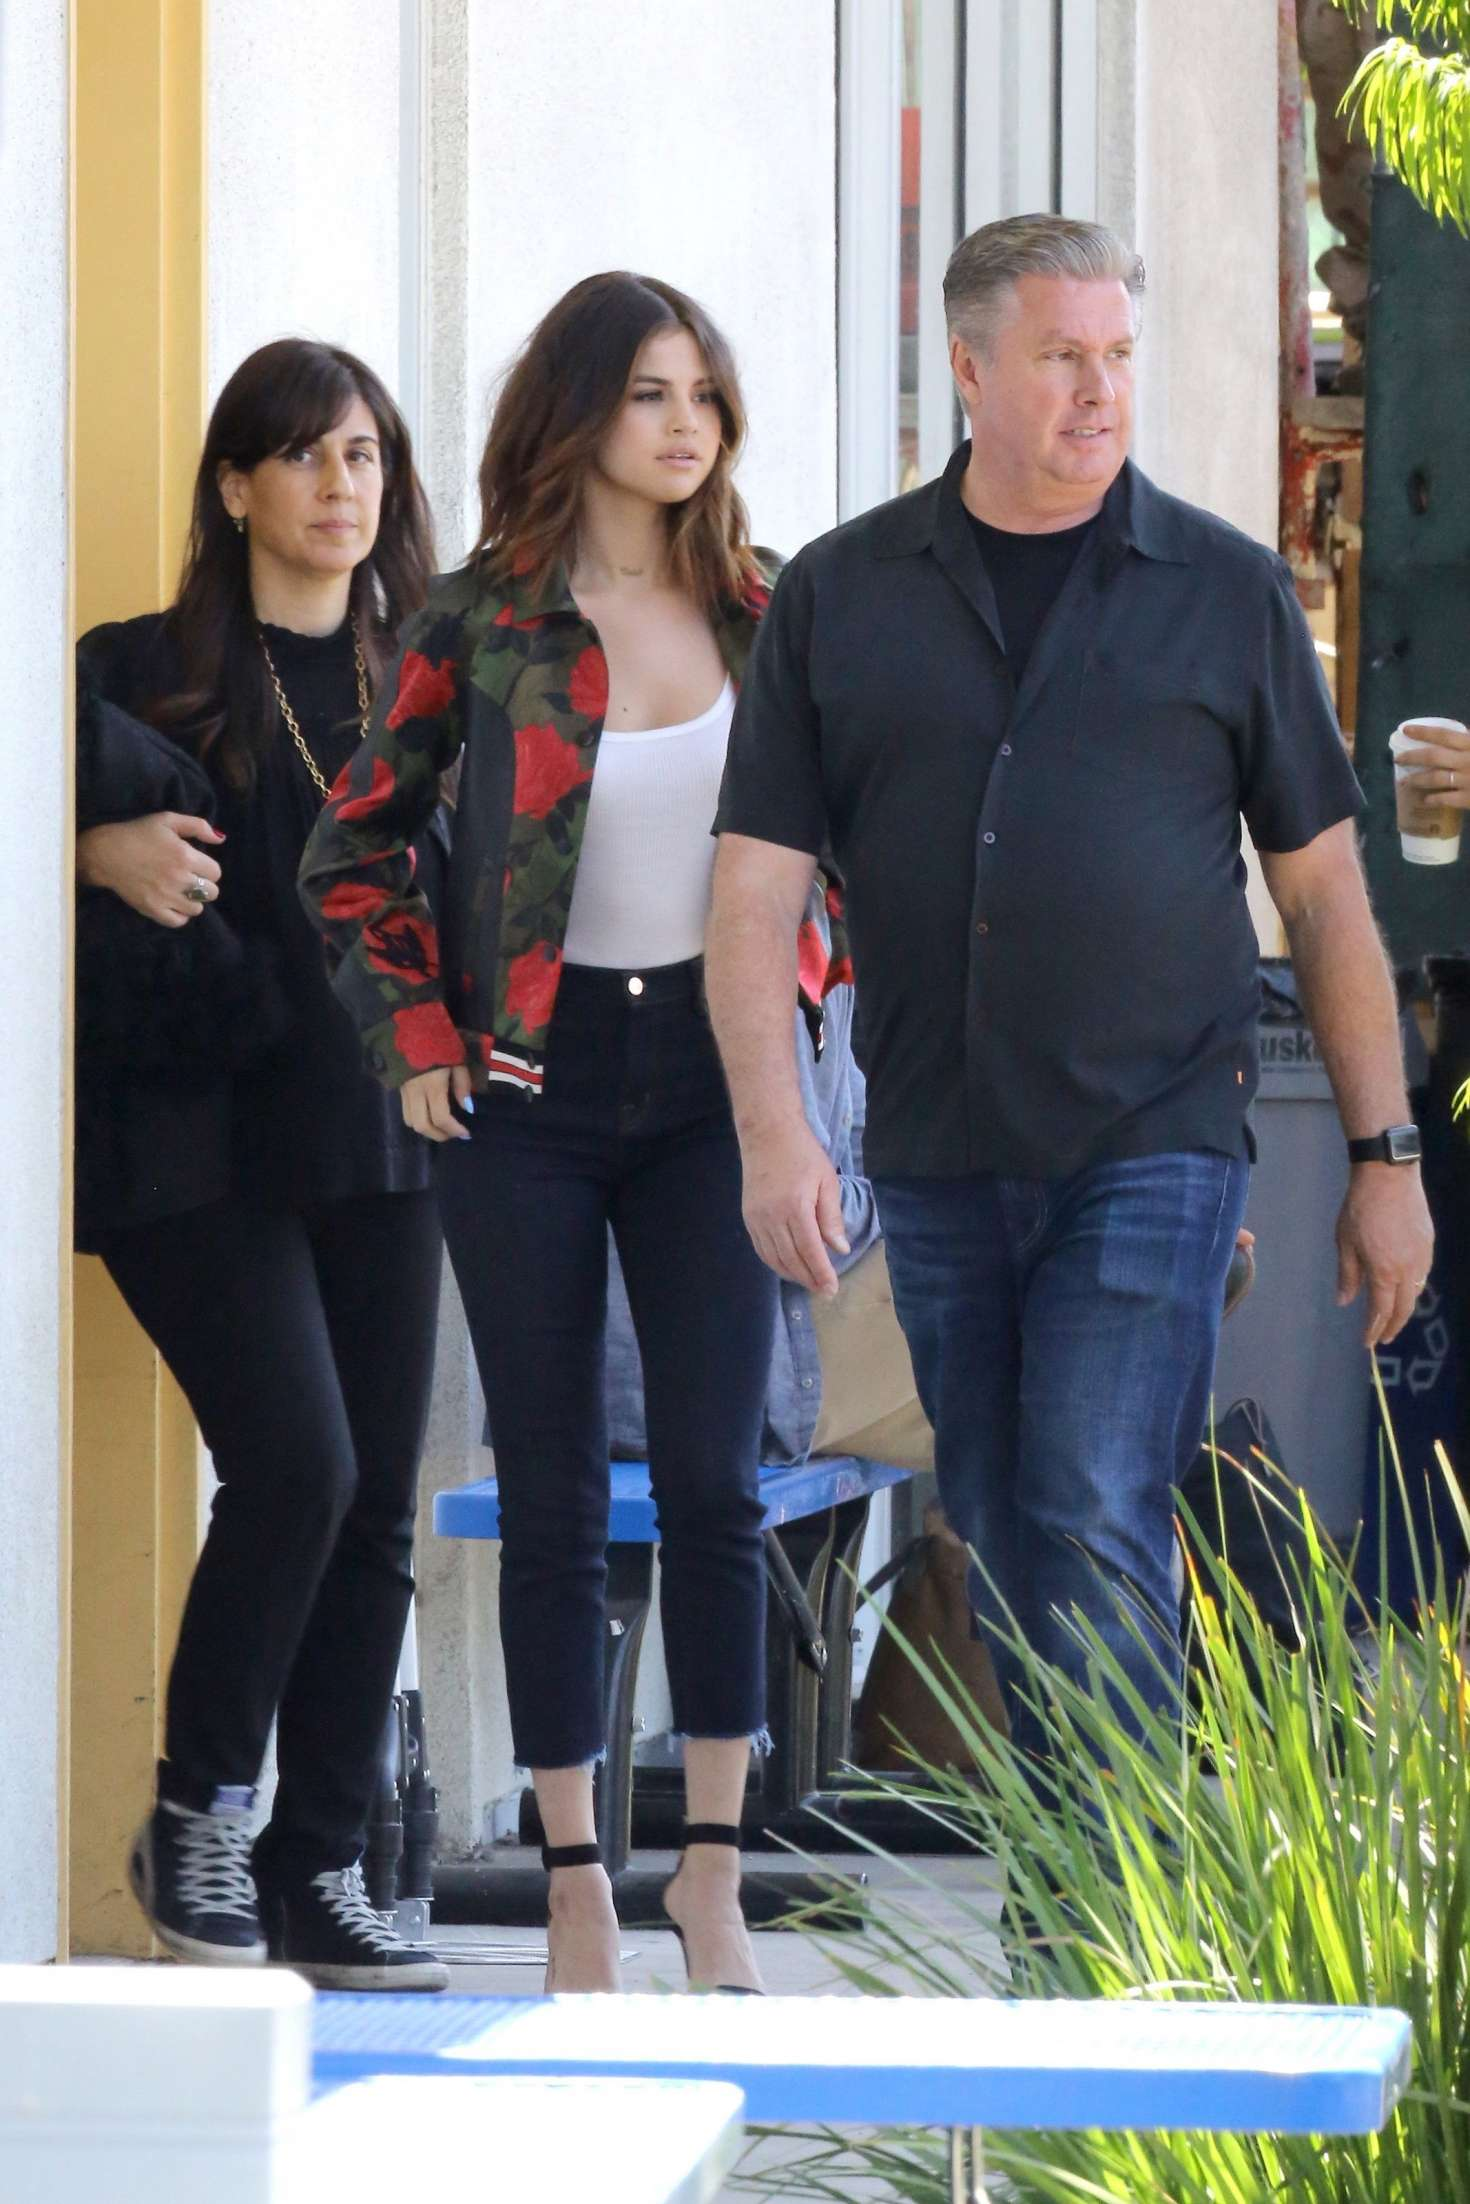 Selena gomez psa at a school photoshoot in los angeles nudes (44 pic)